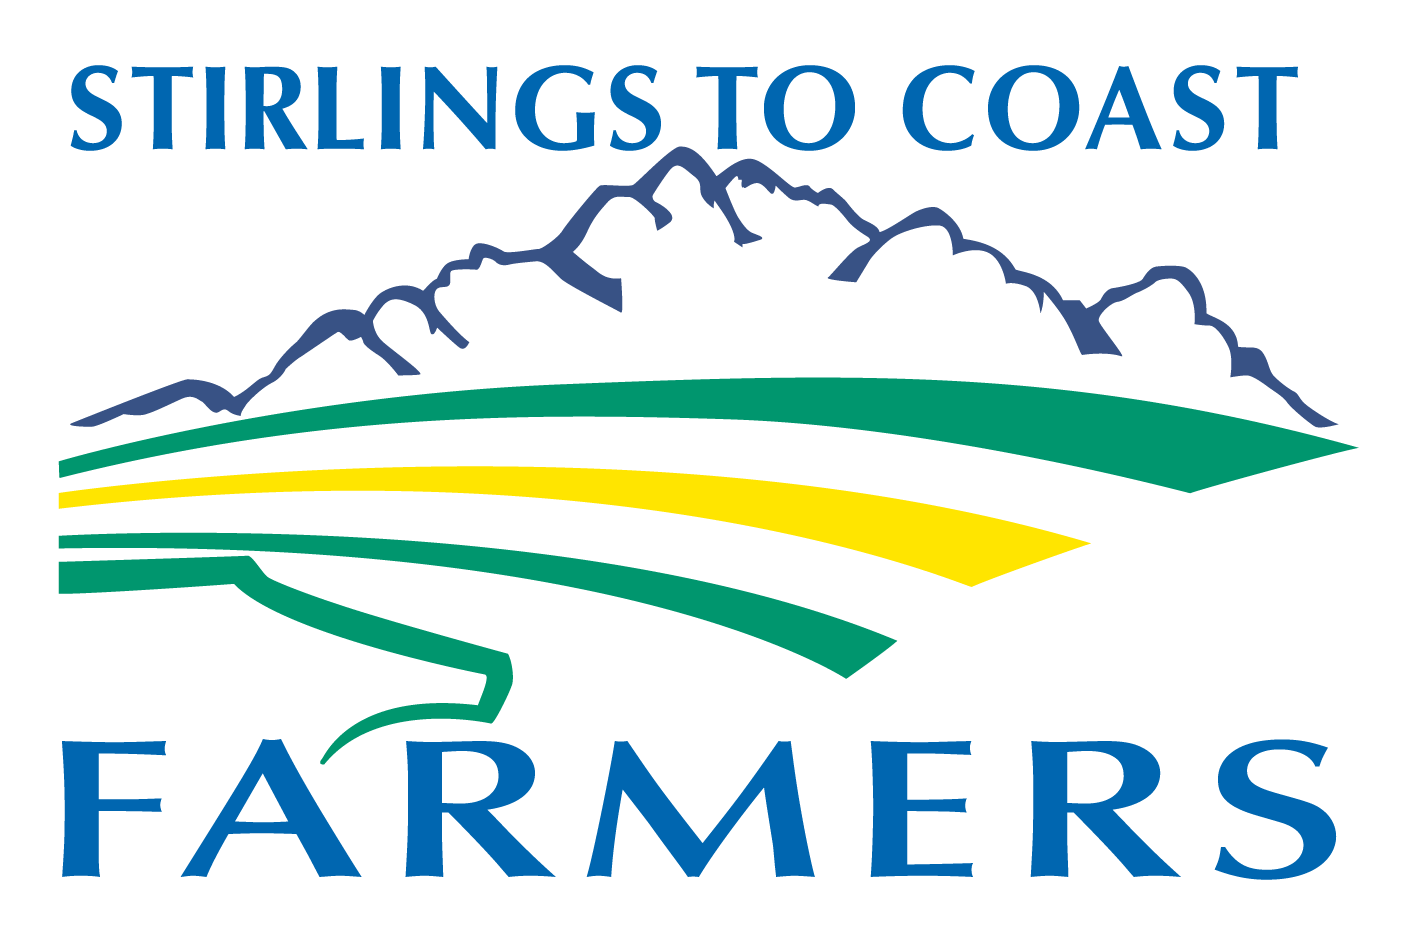 Stirlings to Coast Farmers colour.png